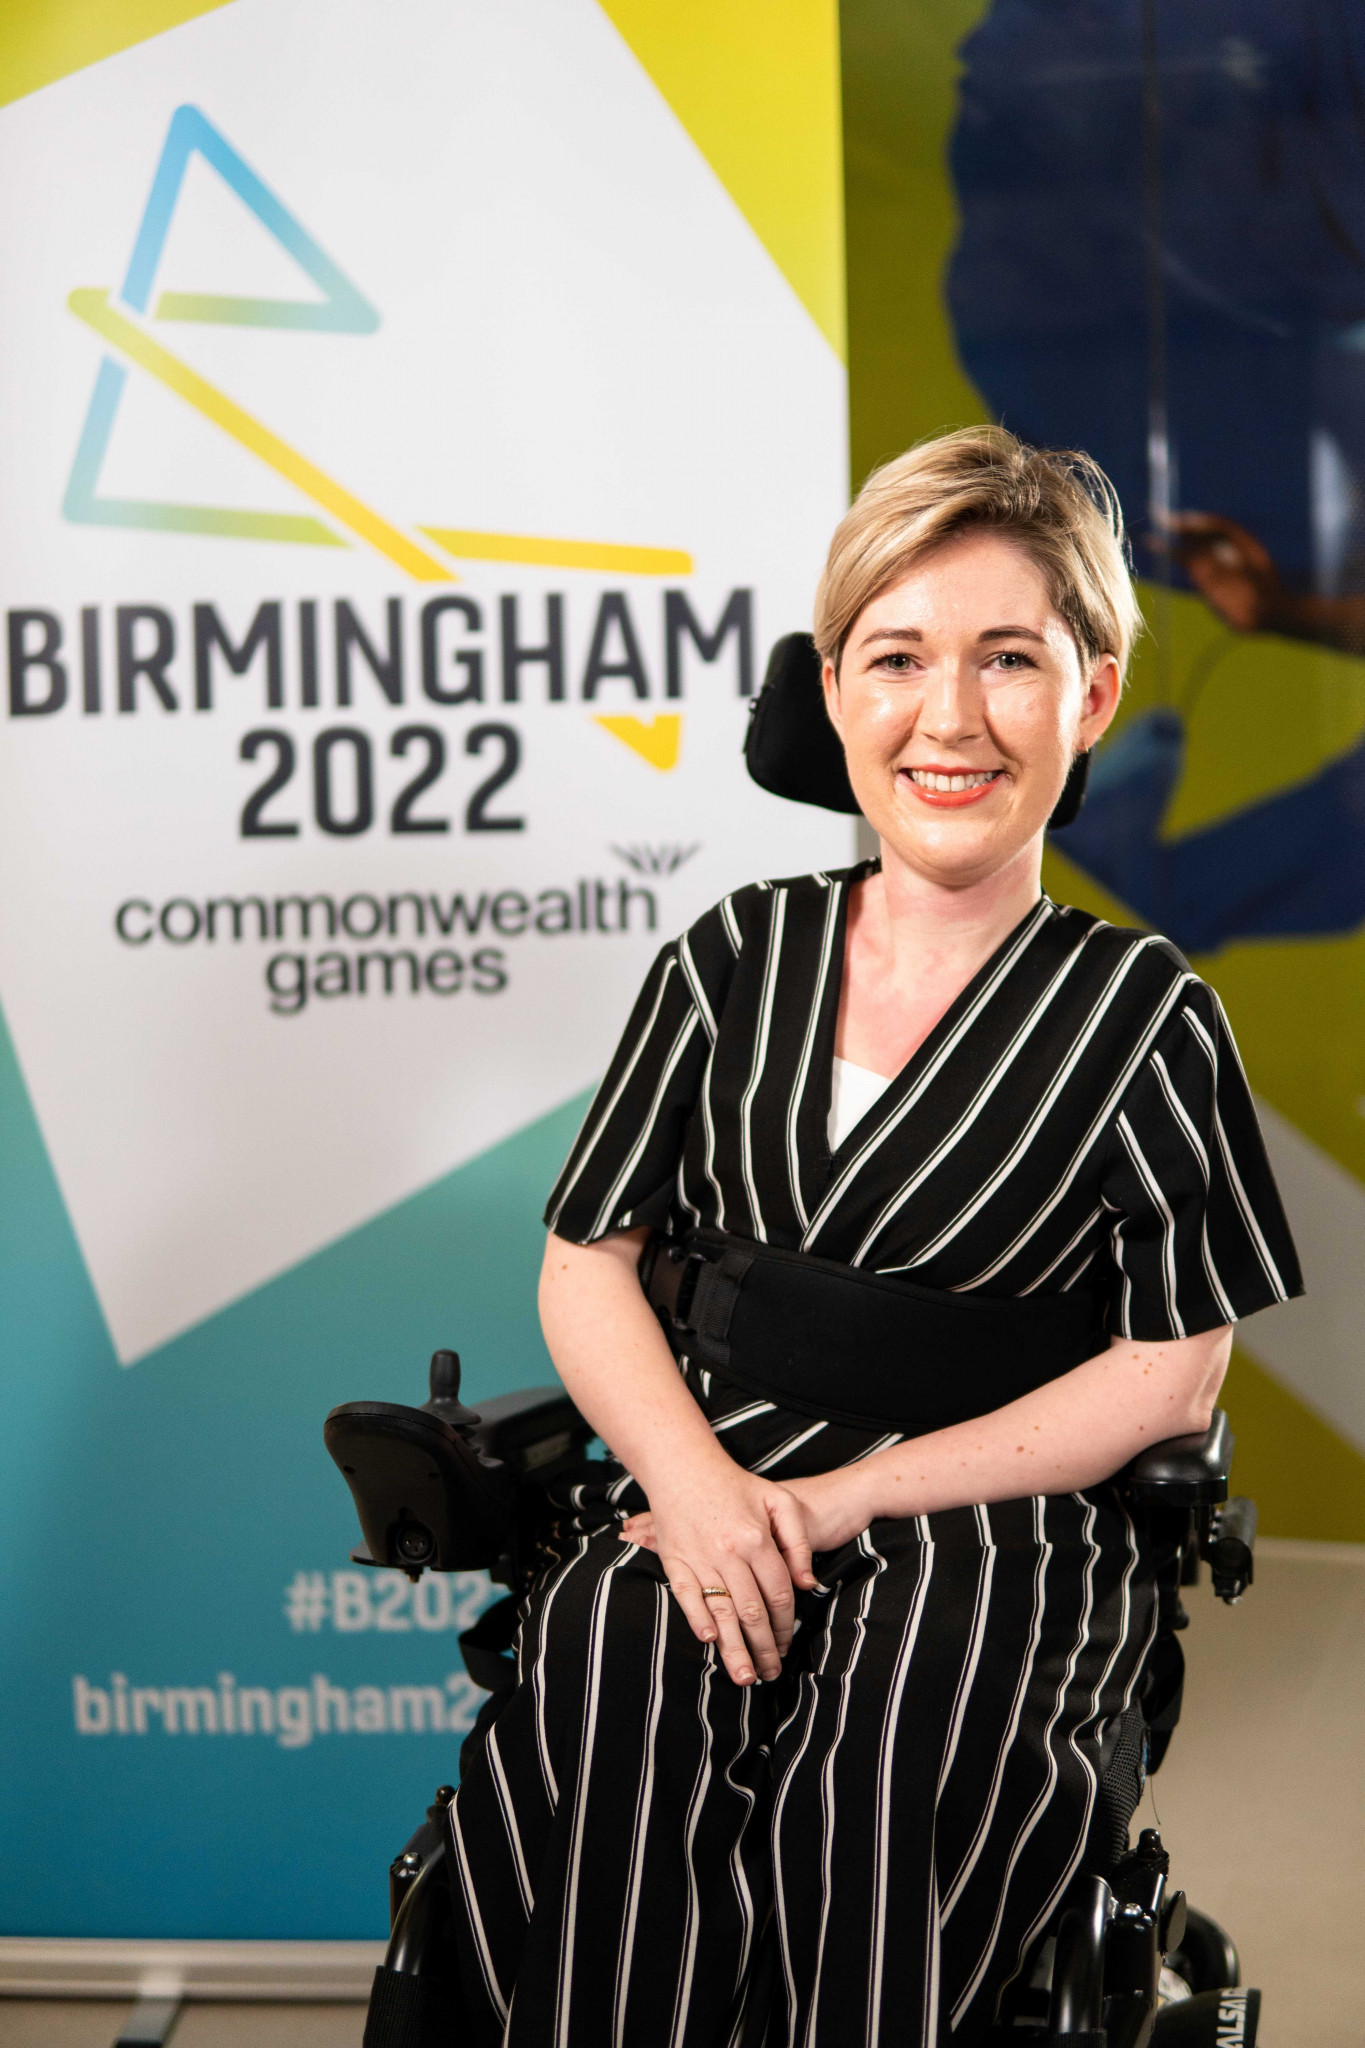 Birmingham 2022 publishes Accessibility and Inclusion Commitment